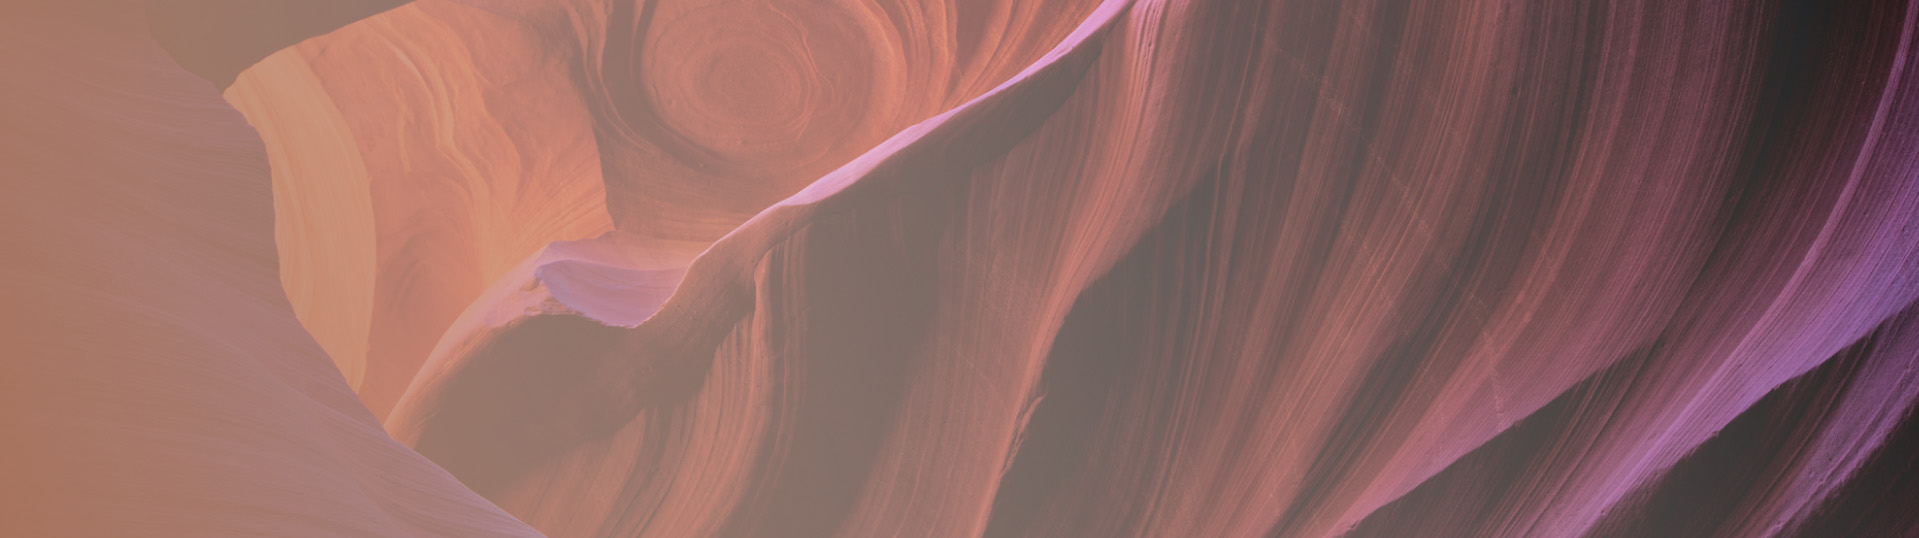 background image of red rock